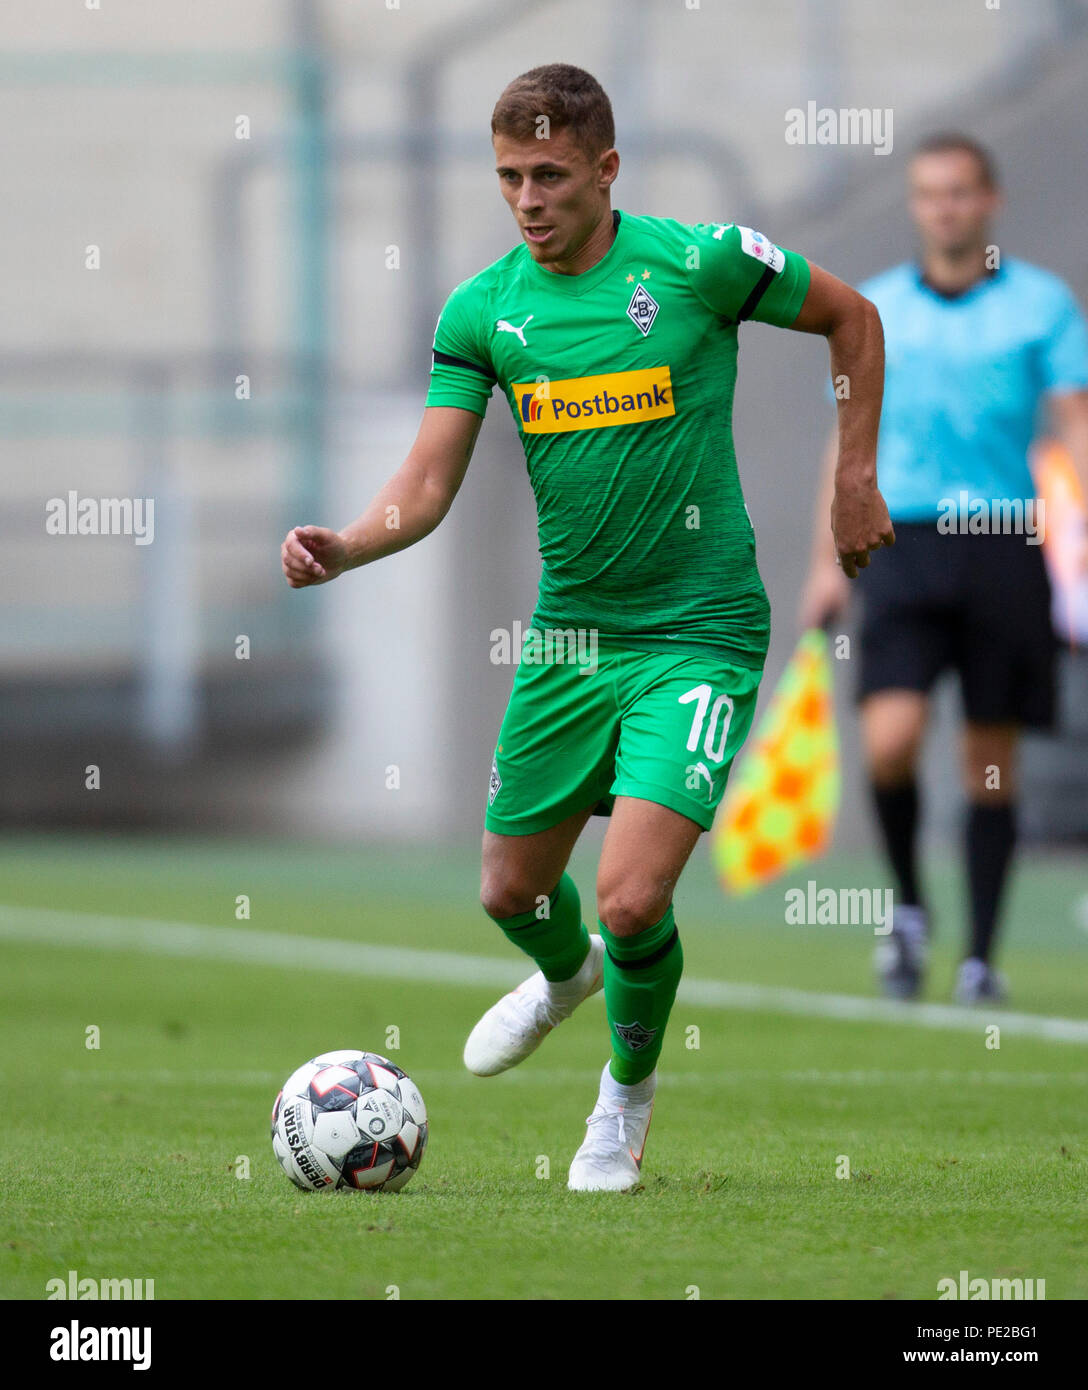 Moenchengladbach, Germany August 12 2018, friendly match, Borussia Moenchengladbach vs FC Wegberg-Beeck: Oscar Wendt (BMG)  in action.               Credit: Juergen Schwarz/Alamy Live News - Stock Image